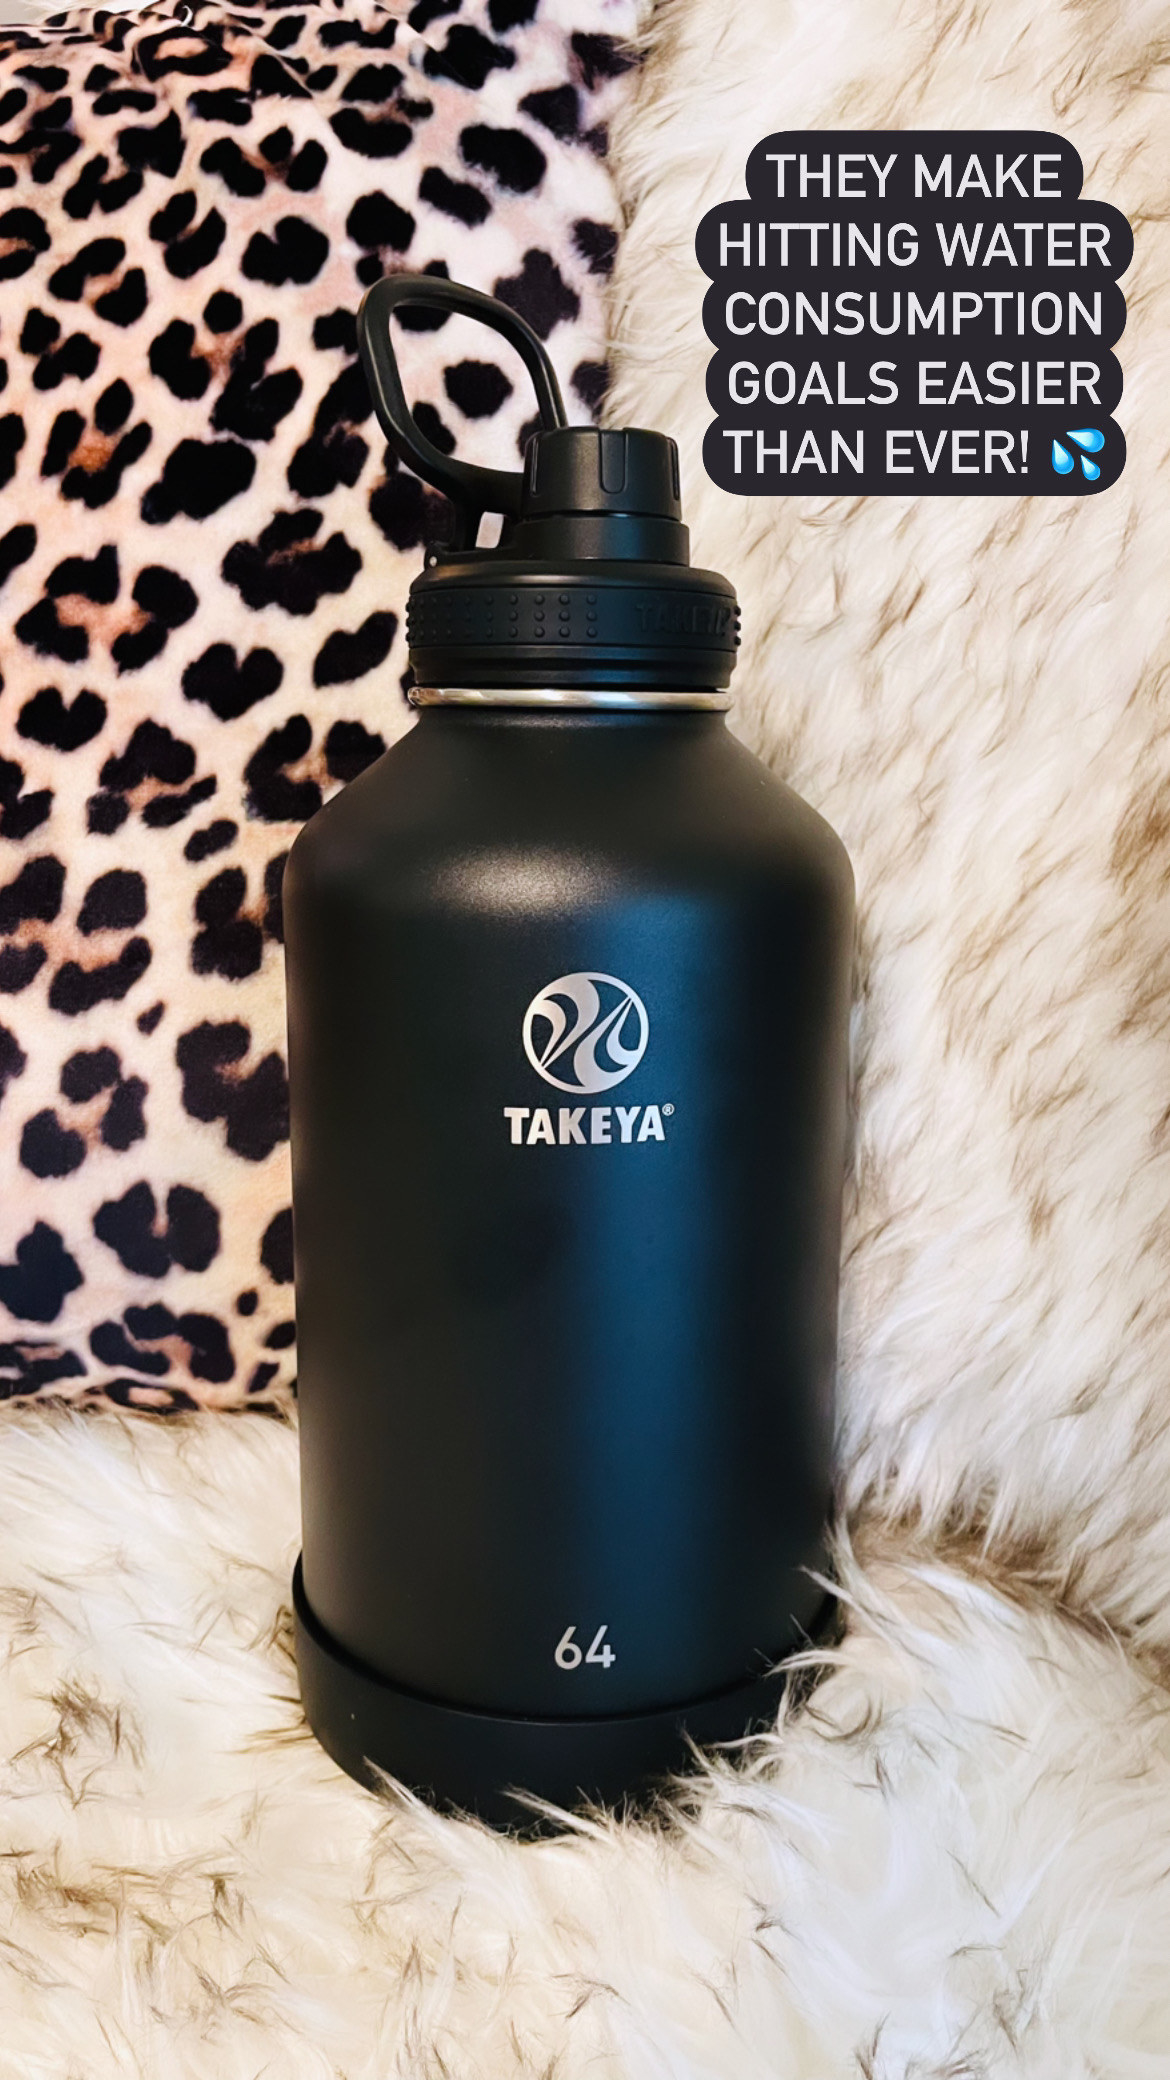 """Black 64 ounce Takeya water bottle captioned """"the make hitting water consumption goals easier than ever"""""""